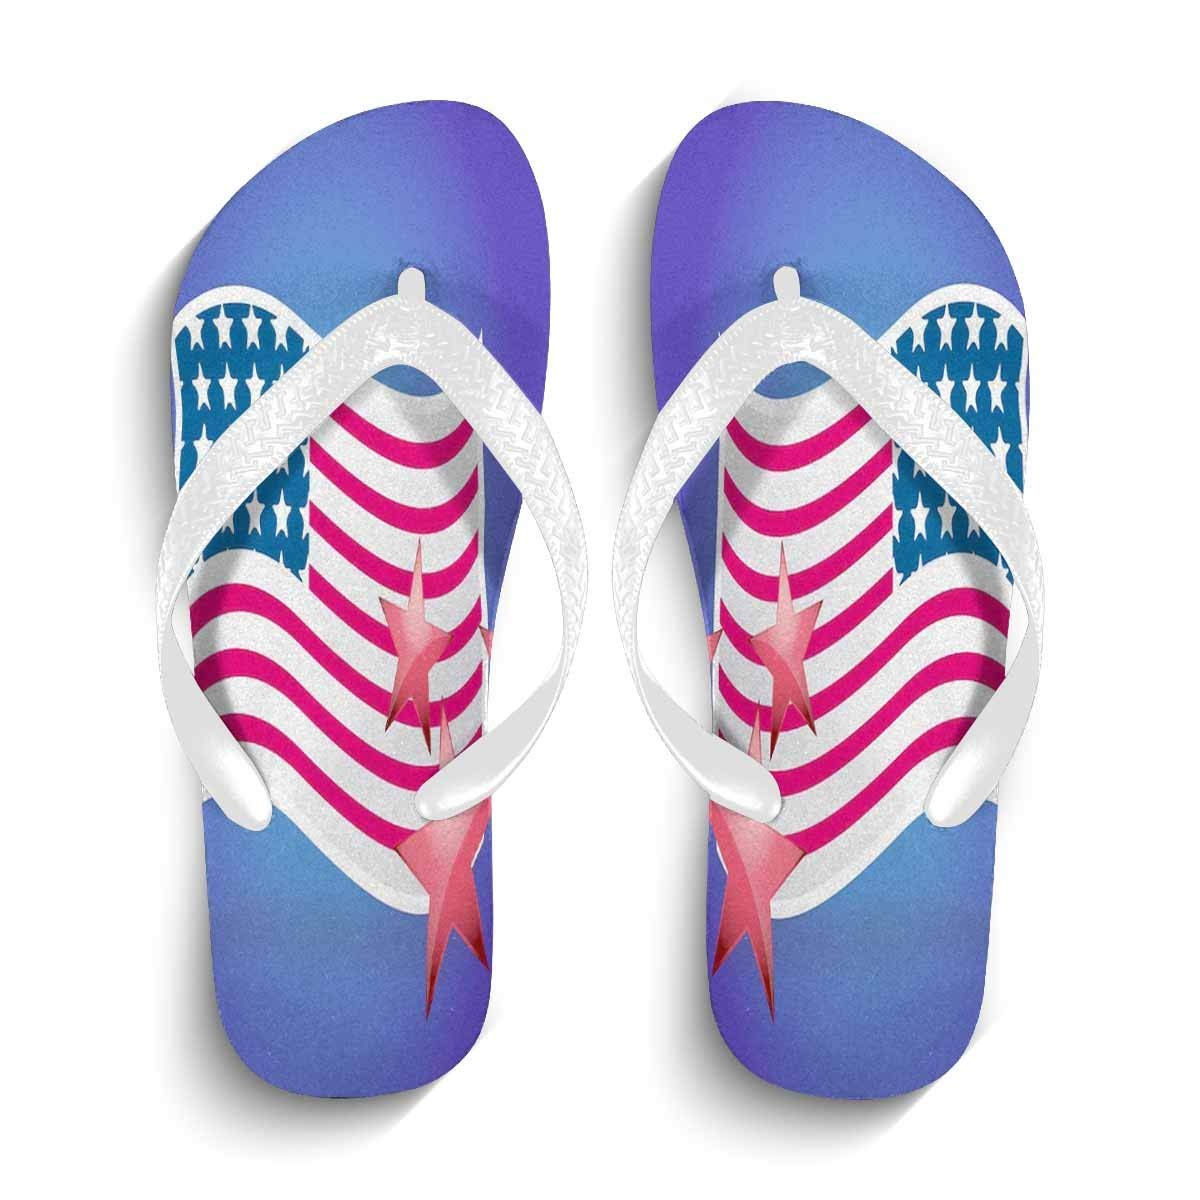 89e86441e38a3 Get Quotations · Men Thong Sandal Slippers with American Flag Shower Gym  Pool Beach Flip Flops